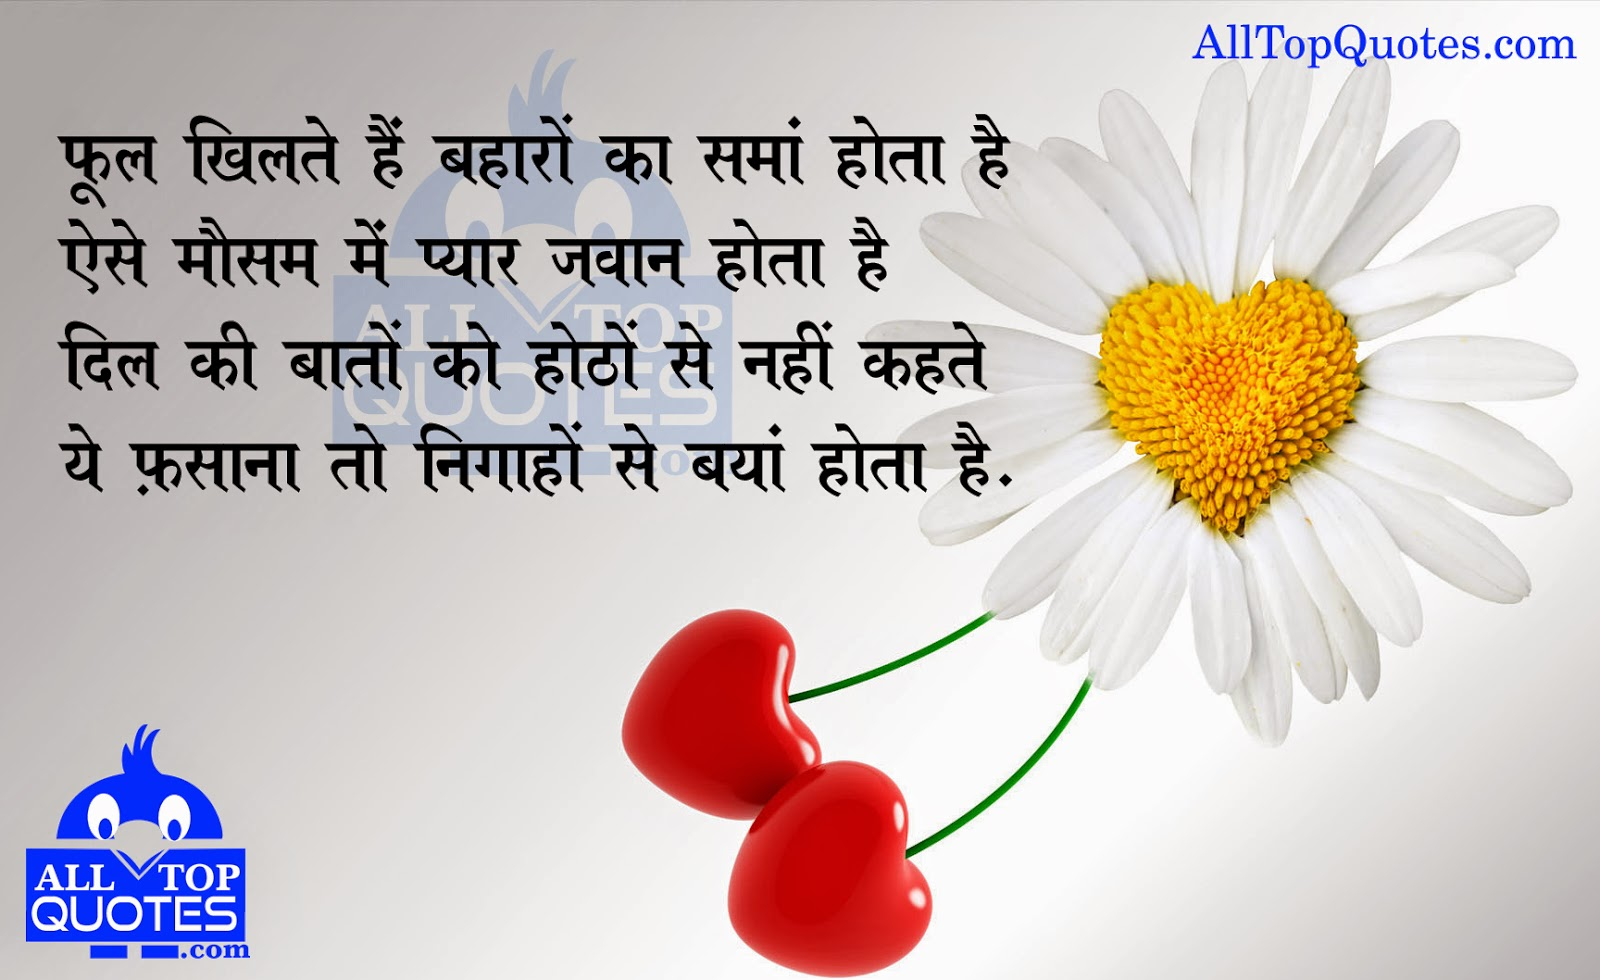 hindi romantic quotes quotesgram